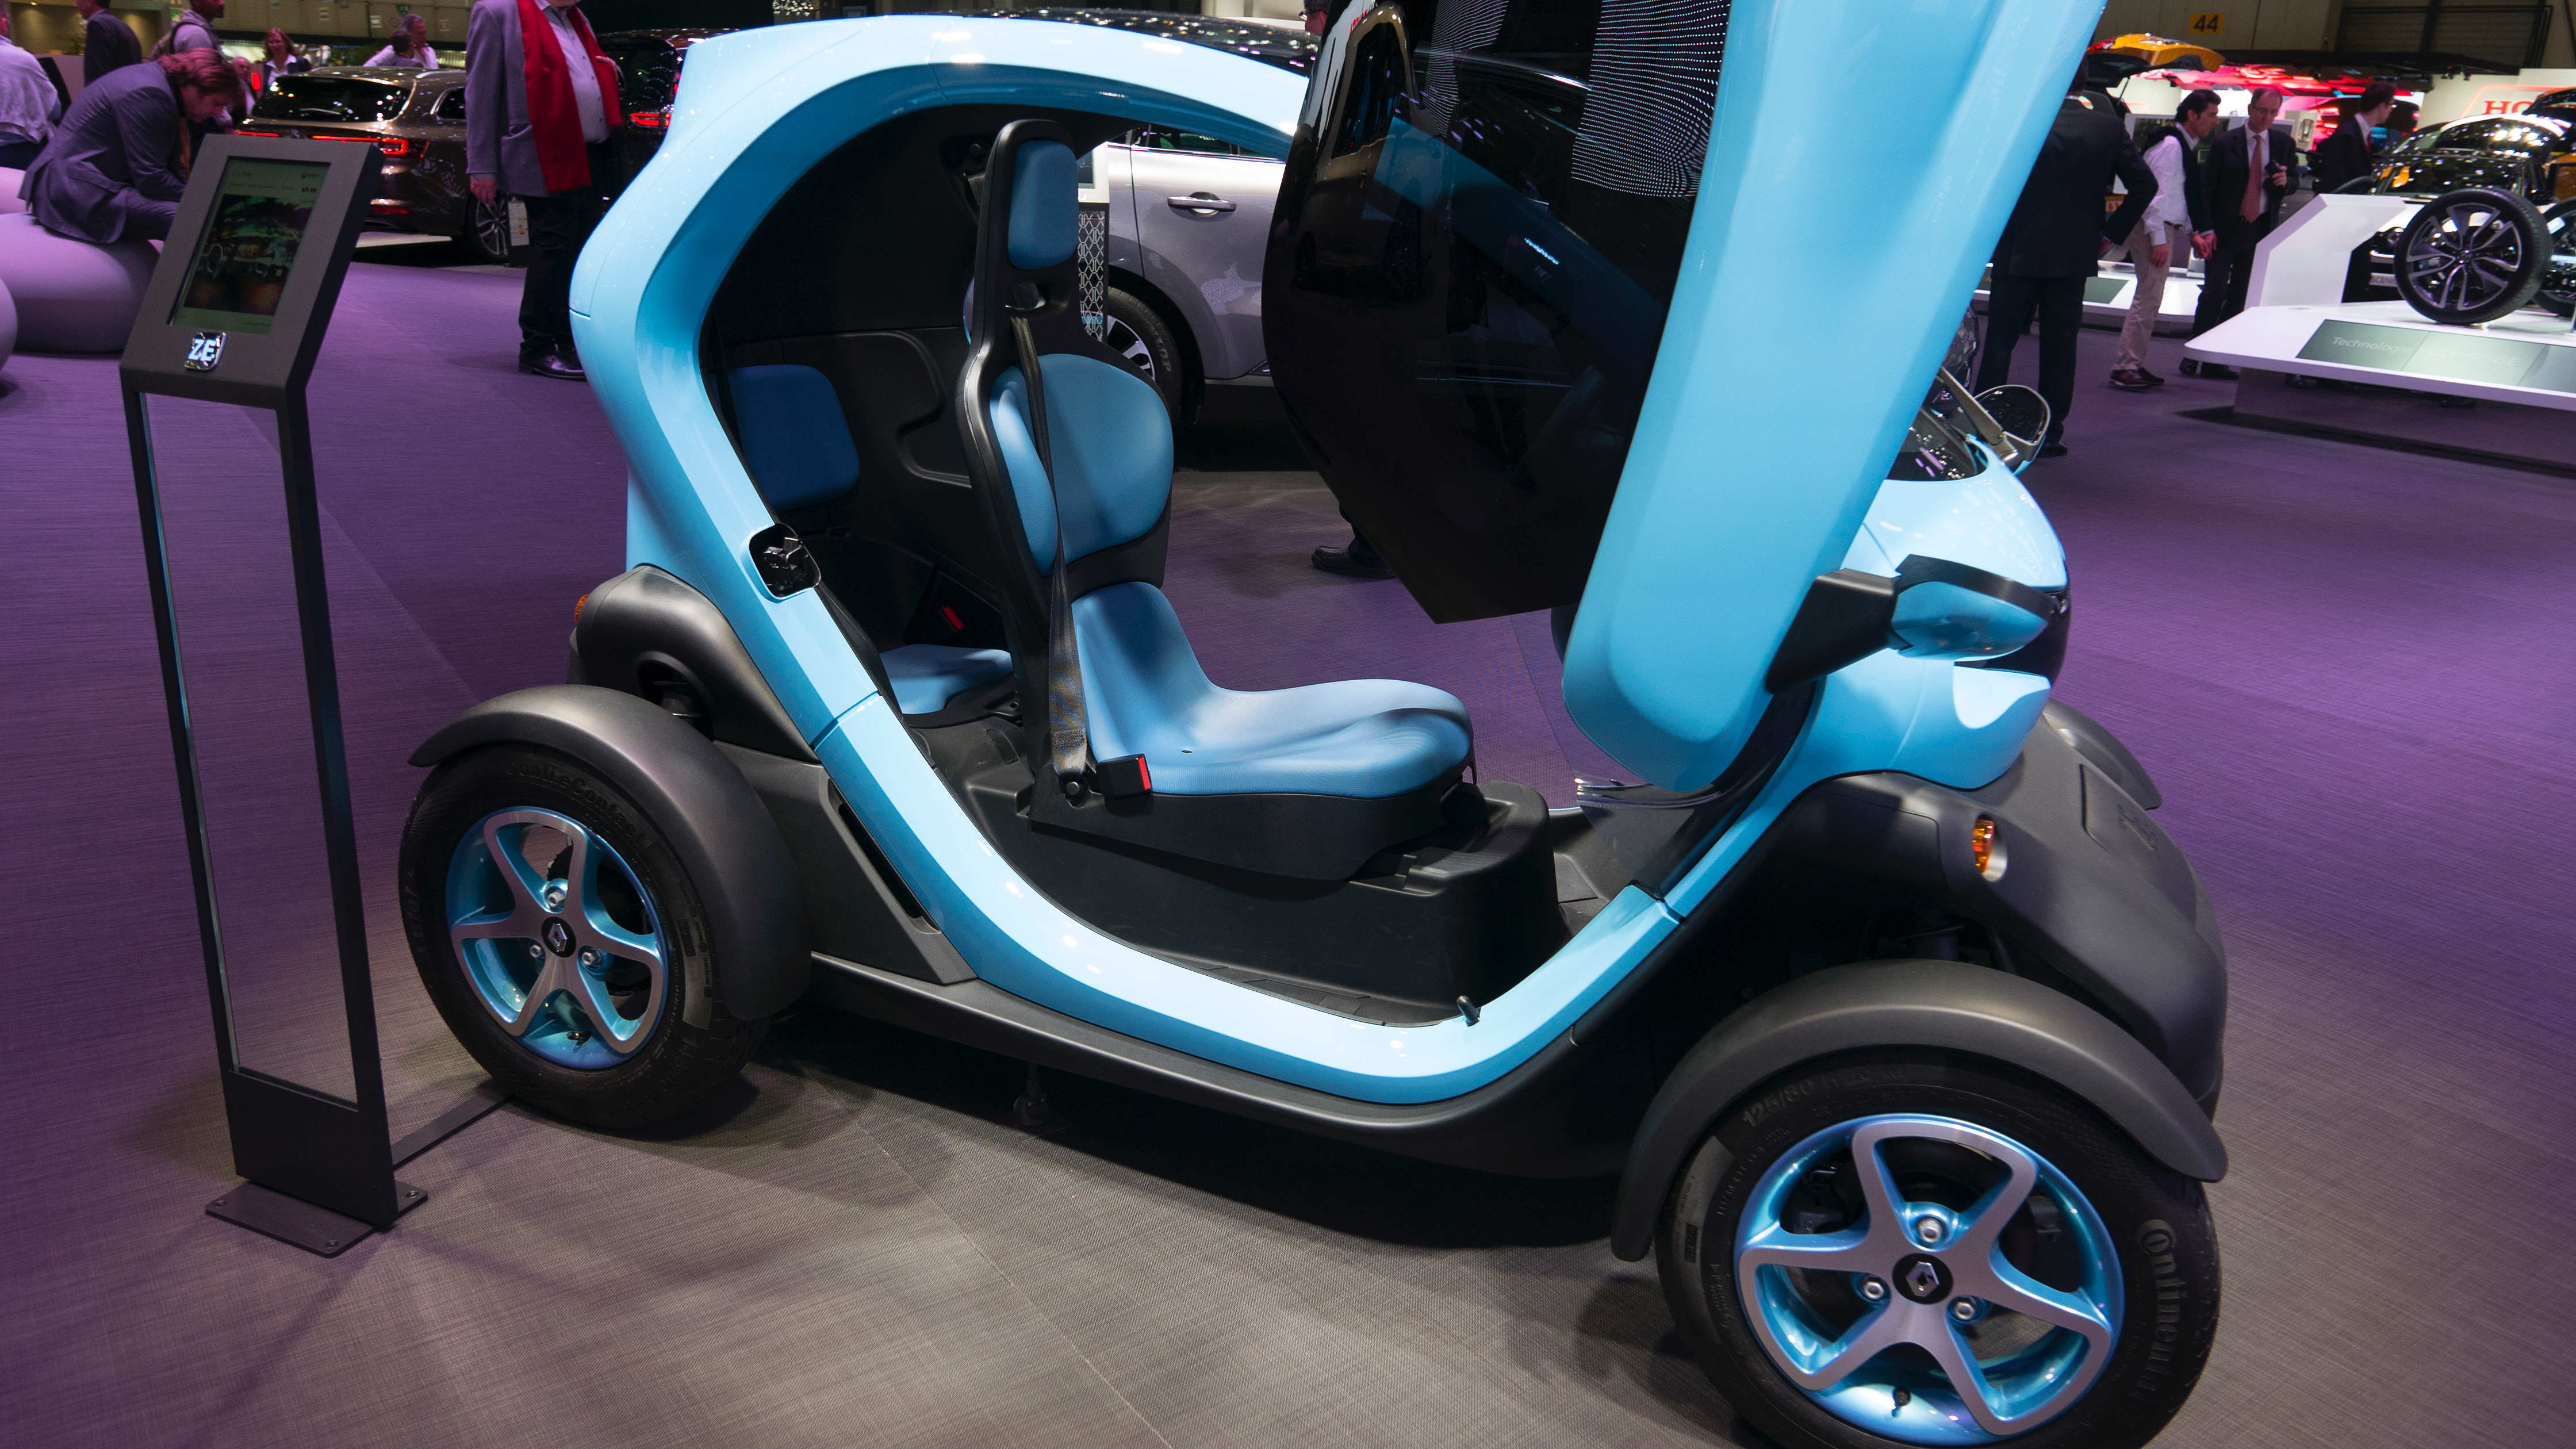 Renault Twizy 2016, 2016, 86, 86th, Automobile, HQ Photo